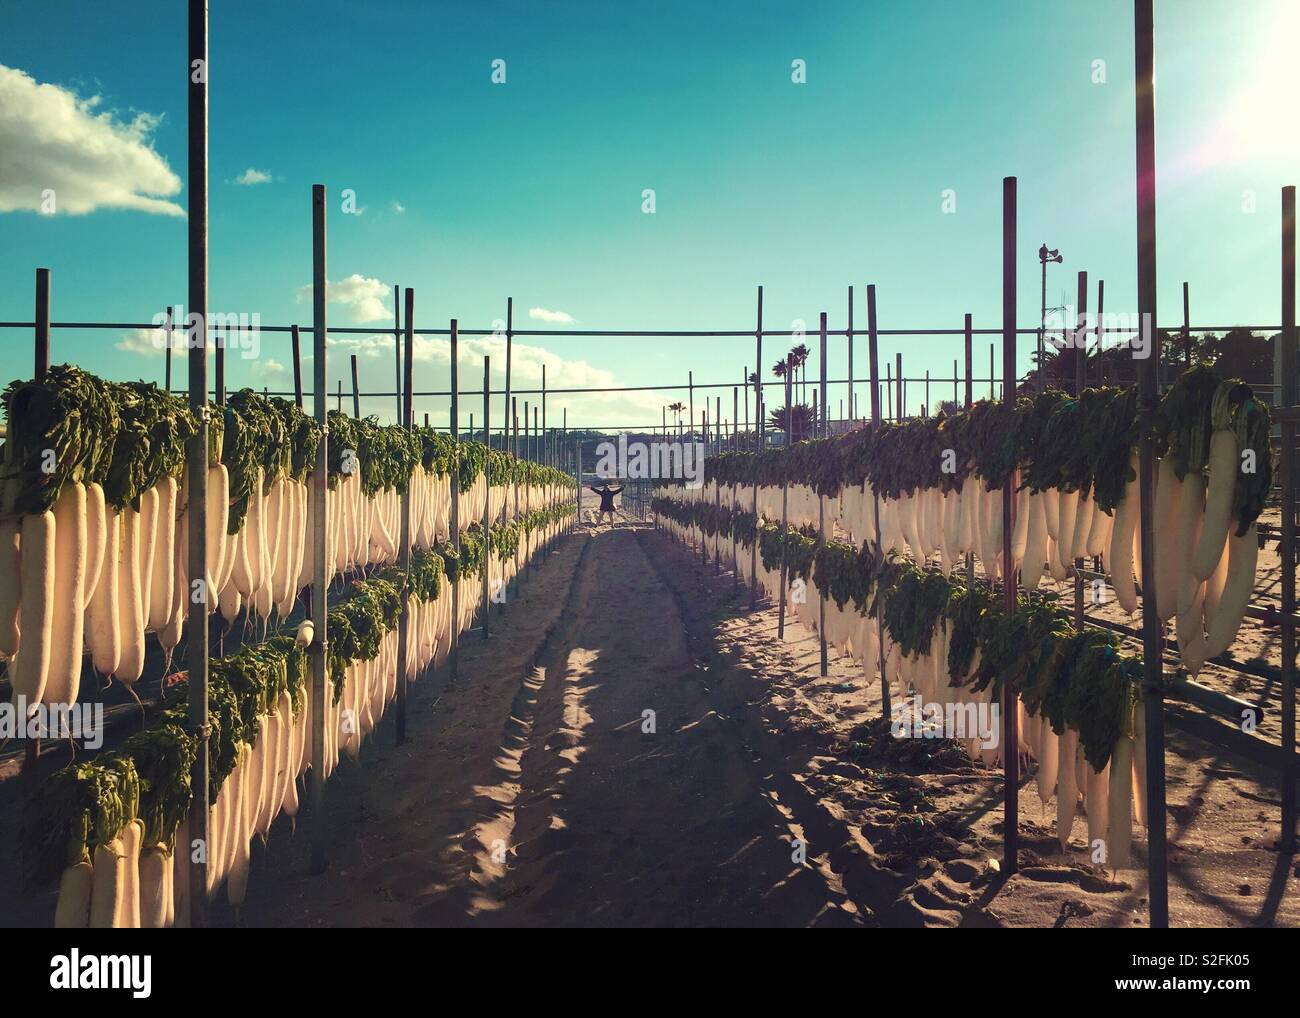 December 19, 2018 at Minamishitauramachi, Miura City, Kanagawa Prefecture, Japan -  Daikon or Japanese radish line the shore of Miura coast. They are being dried to make hoshi daikon (dried radish).Stock Photo